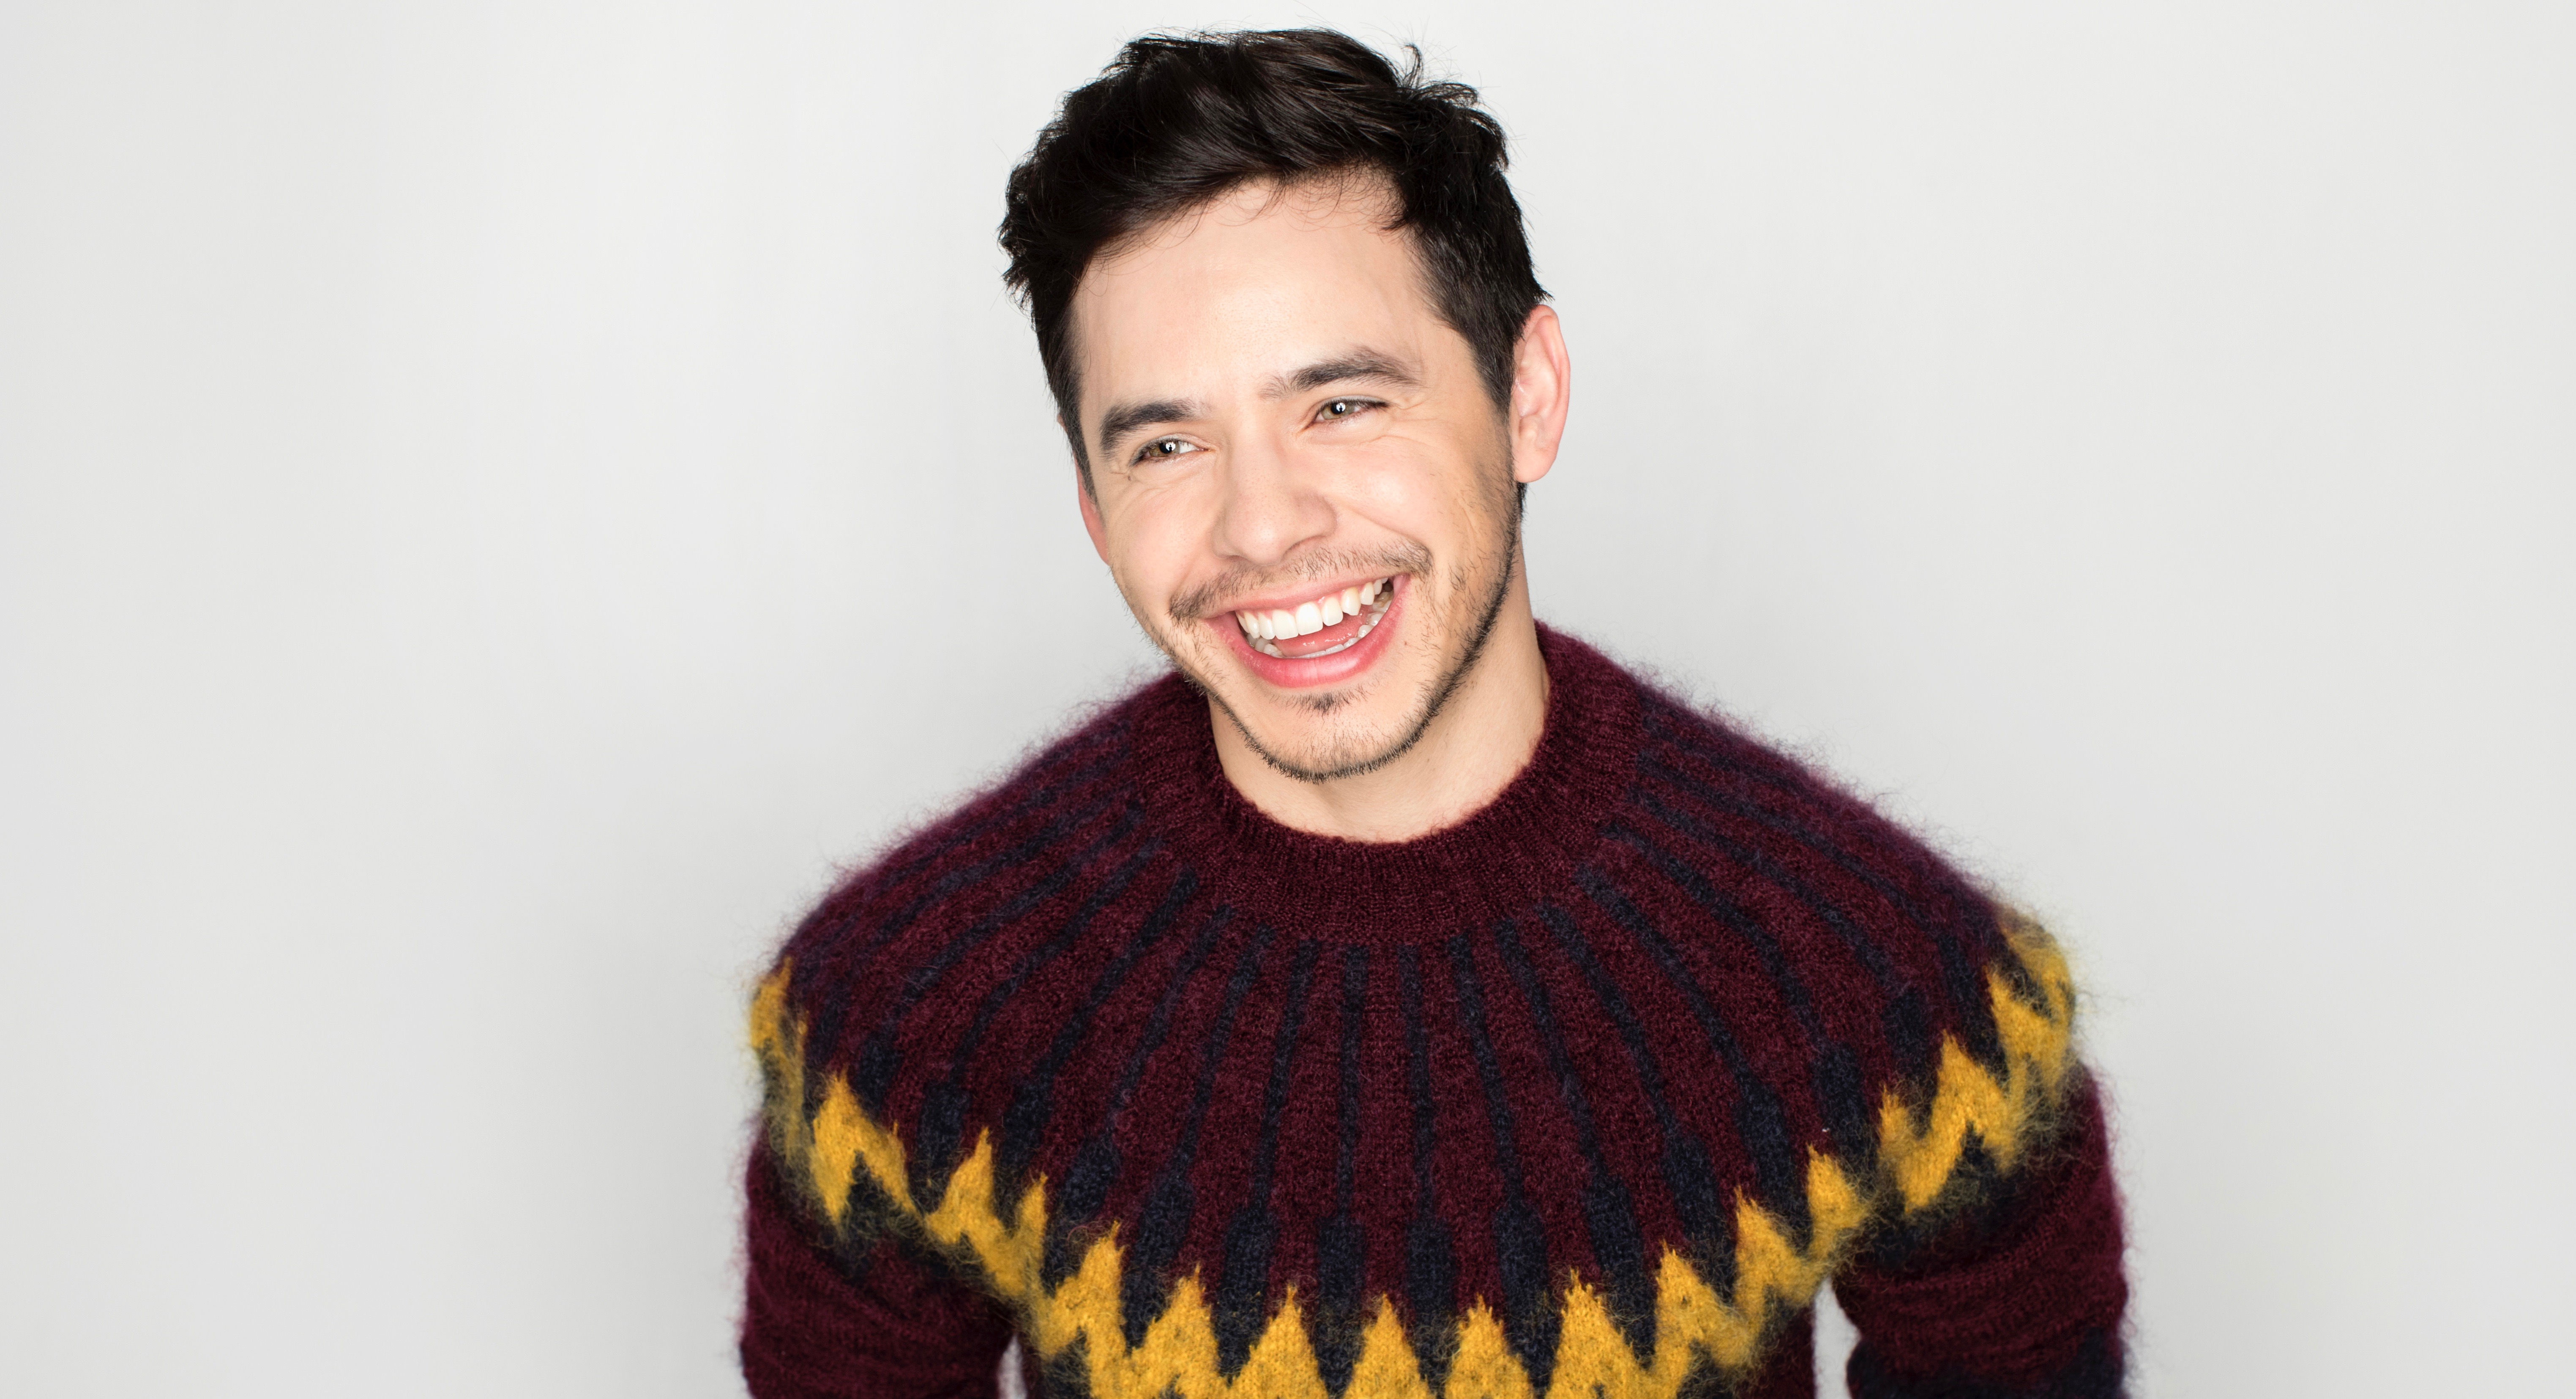 David Archuleta Says He Is Part of LGBTQIA+ Community, Opens Up About Finding 'That Balance' With Faith